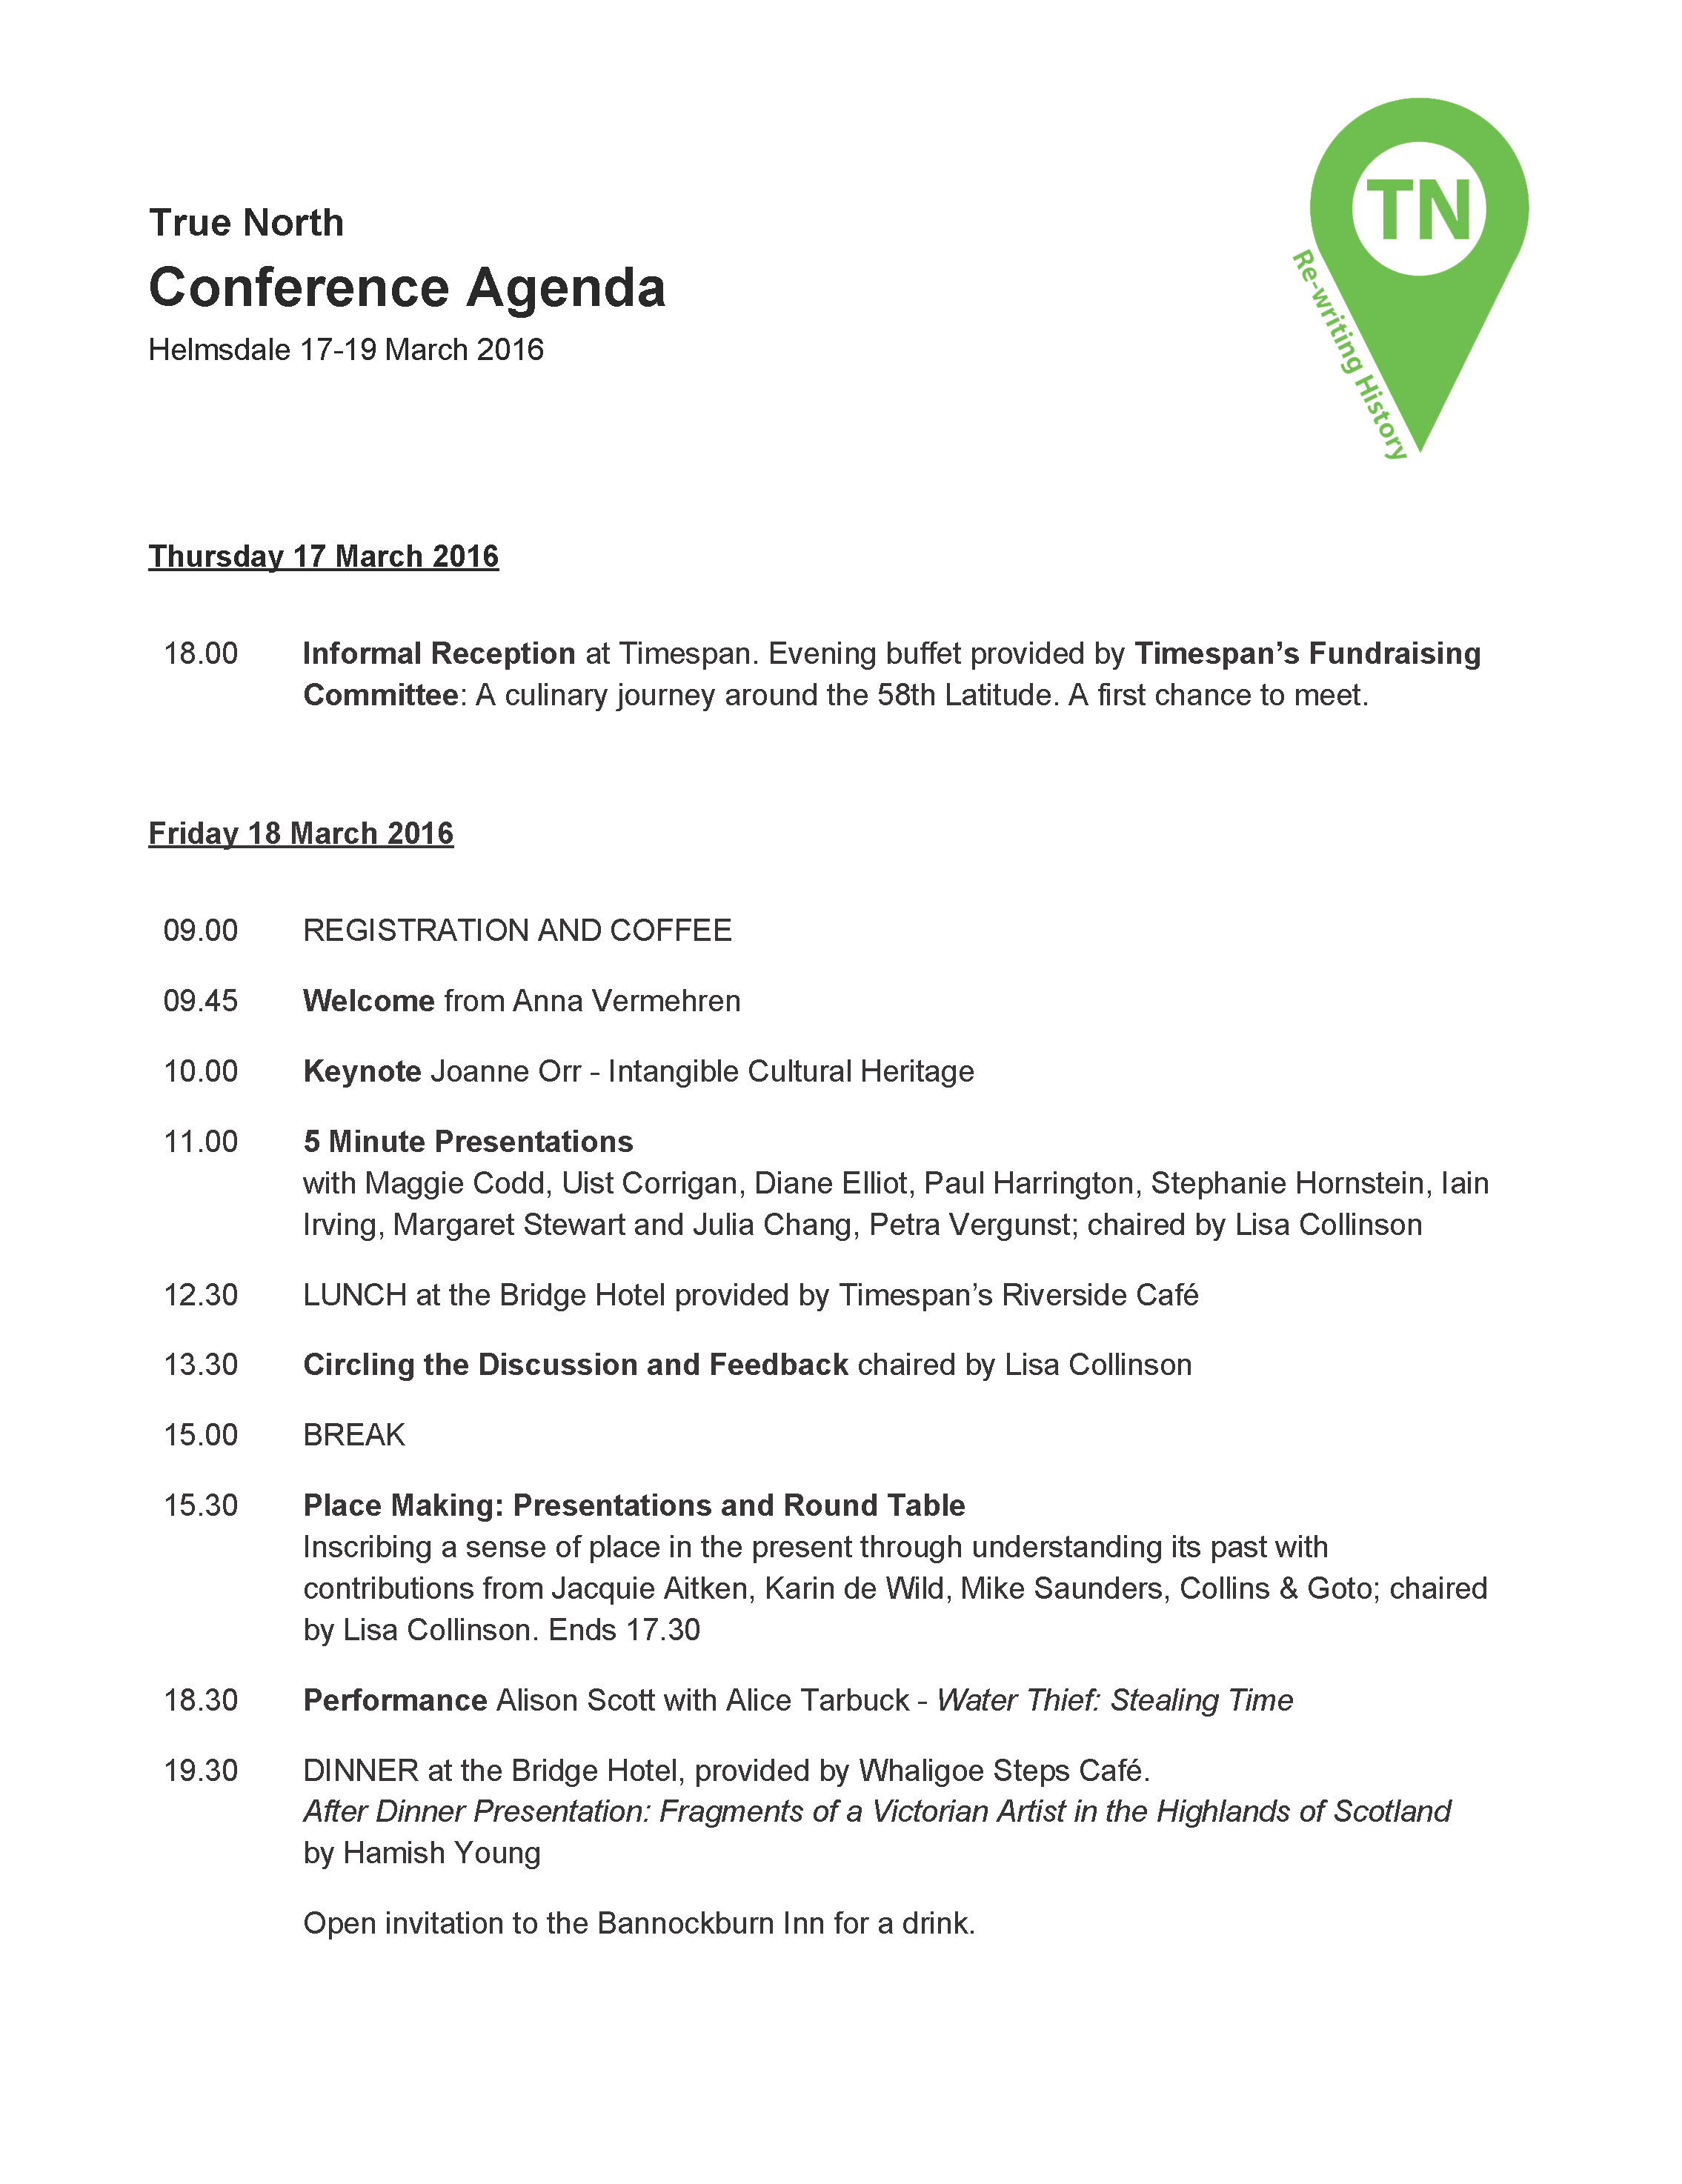 Page 1 Conference Schedule Timespan Helmsdale True North Re-Writing History. 18 and 19.03.2016 http://timespan.org.uk/true-north-conference-2016/